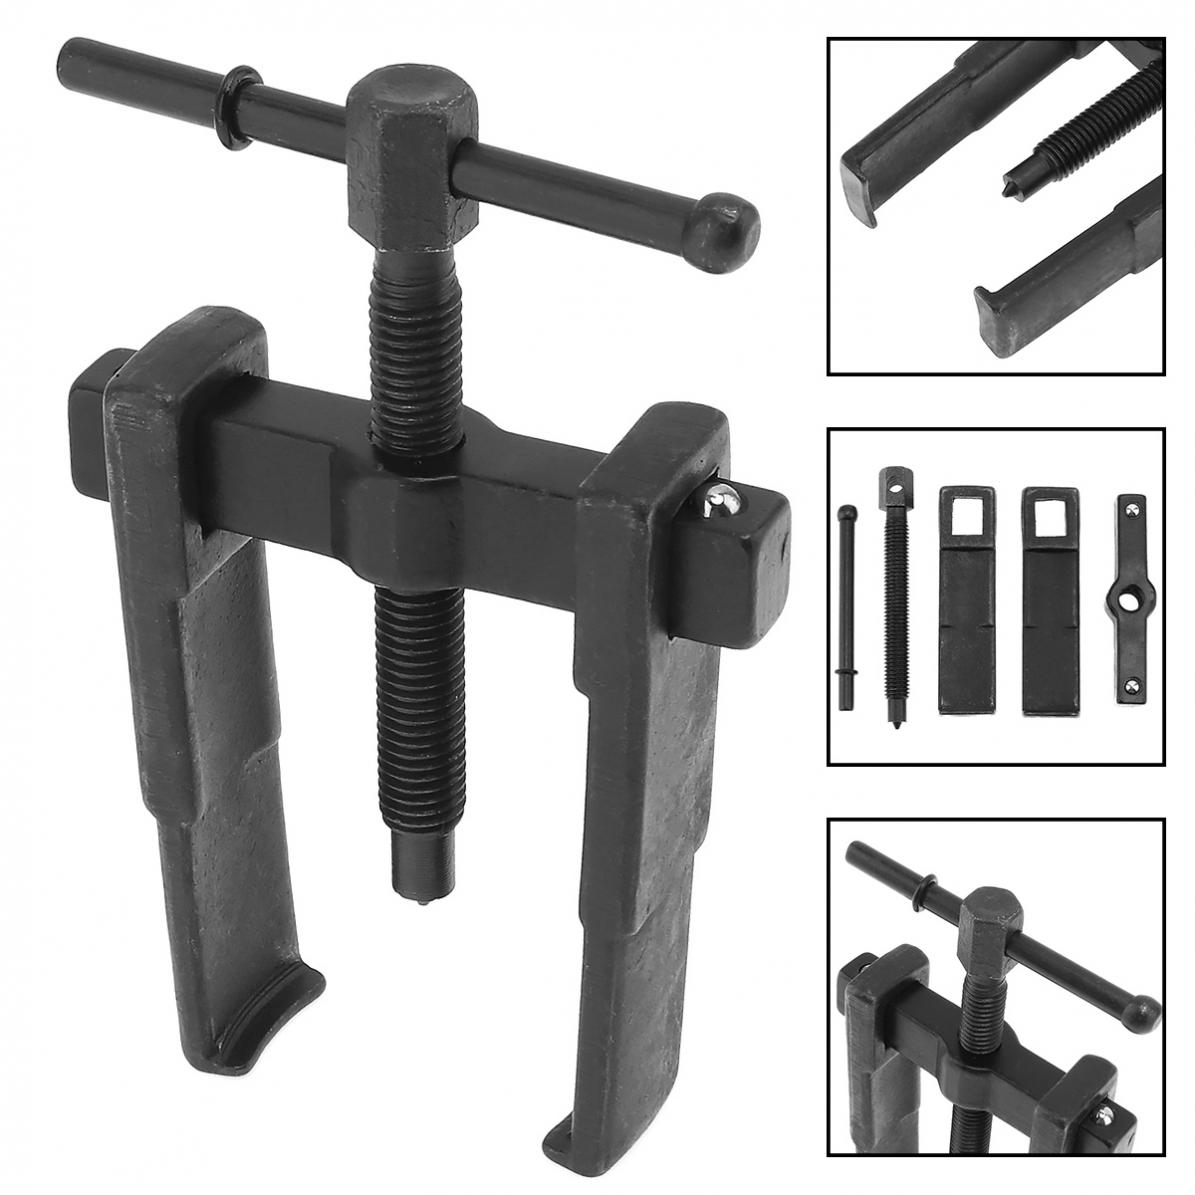 110mm Two Claw Puller Separate Lifting Device Pull Bearing Auto Mechanic Hand Tools Bearing Rama Claw Puller For Auto Machine R